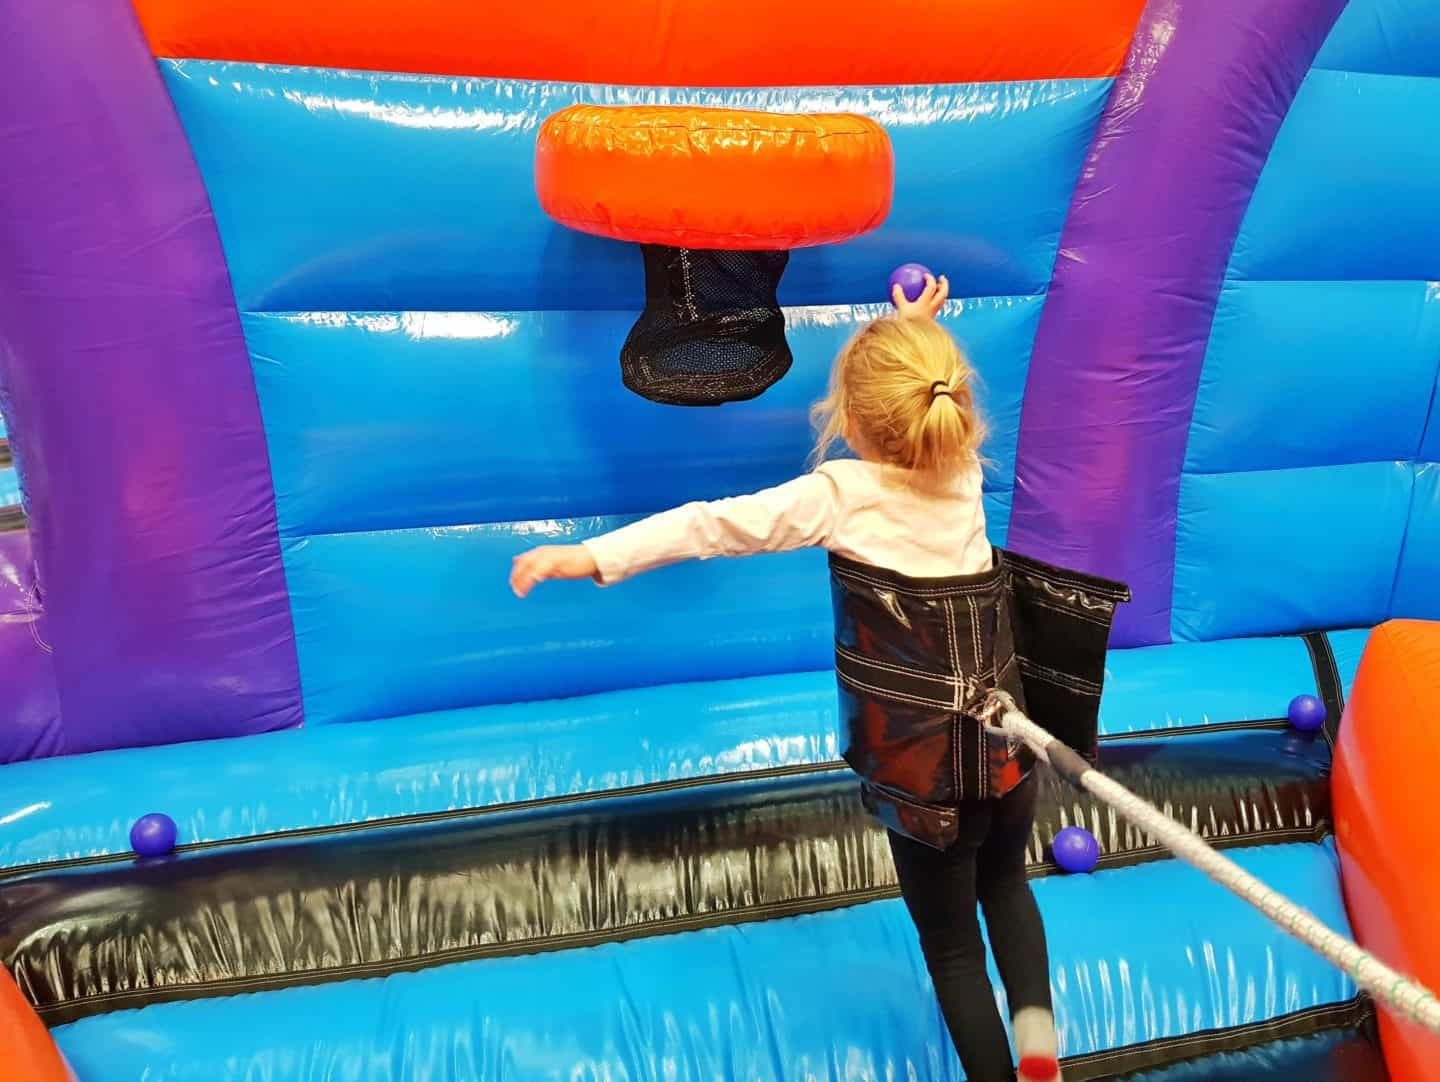 Inflata Nation Birmingham girl on bungee game reaching for basket